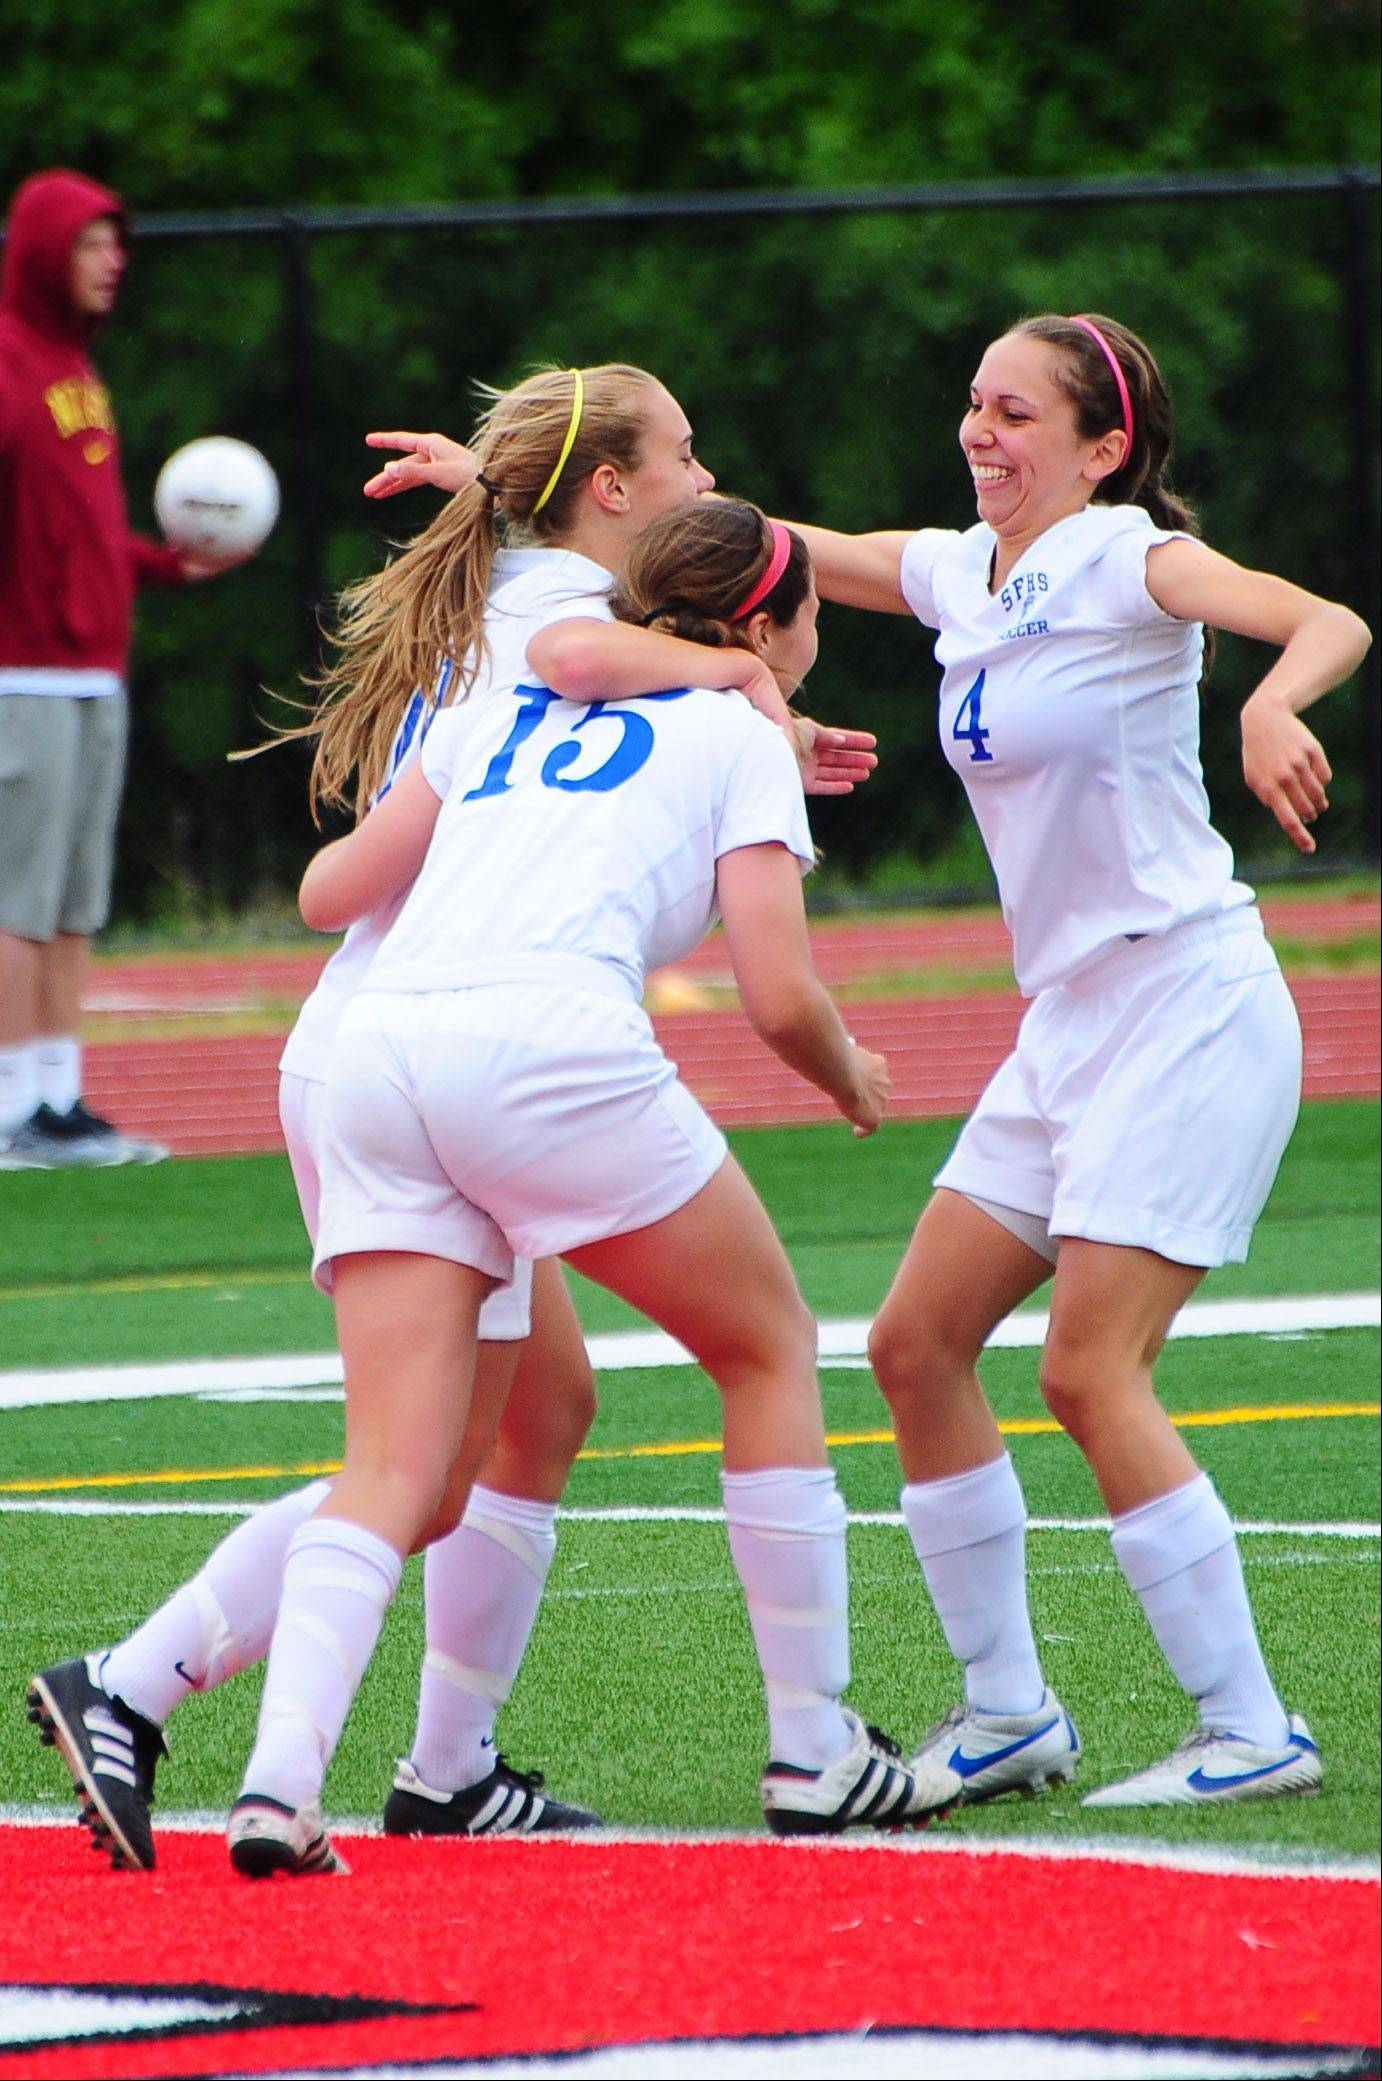 St. Francis' Amanda Gaggioli, Andrea Ravlin, and Sydney Fox celebrate after Gaggioli finds the net during their 1-0 victory over St. Viator on Friday.